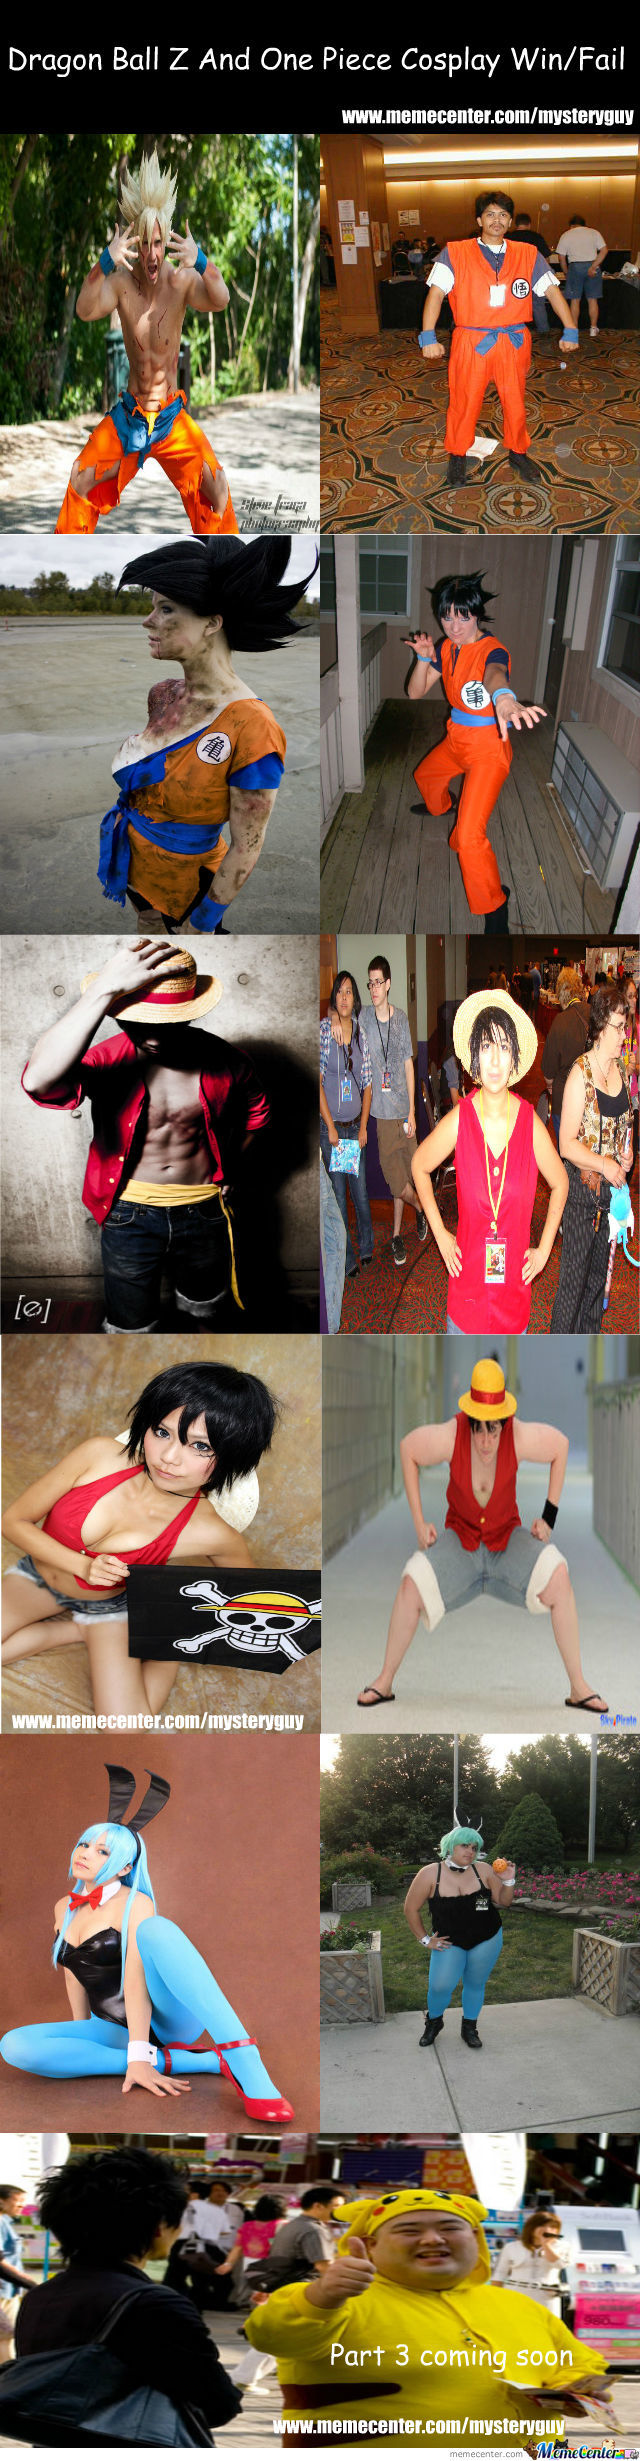 Dragon Ball Z And One Piece Cosplay Win/fail